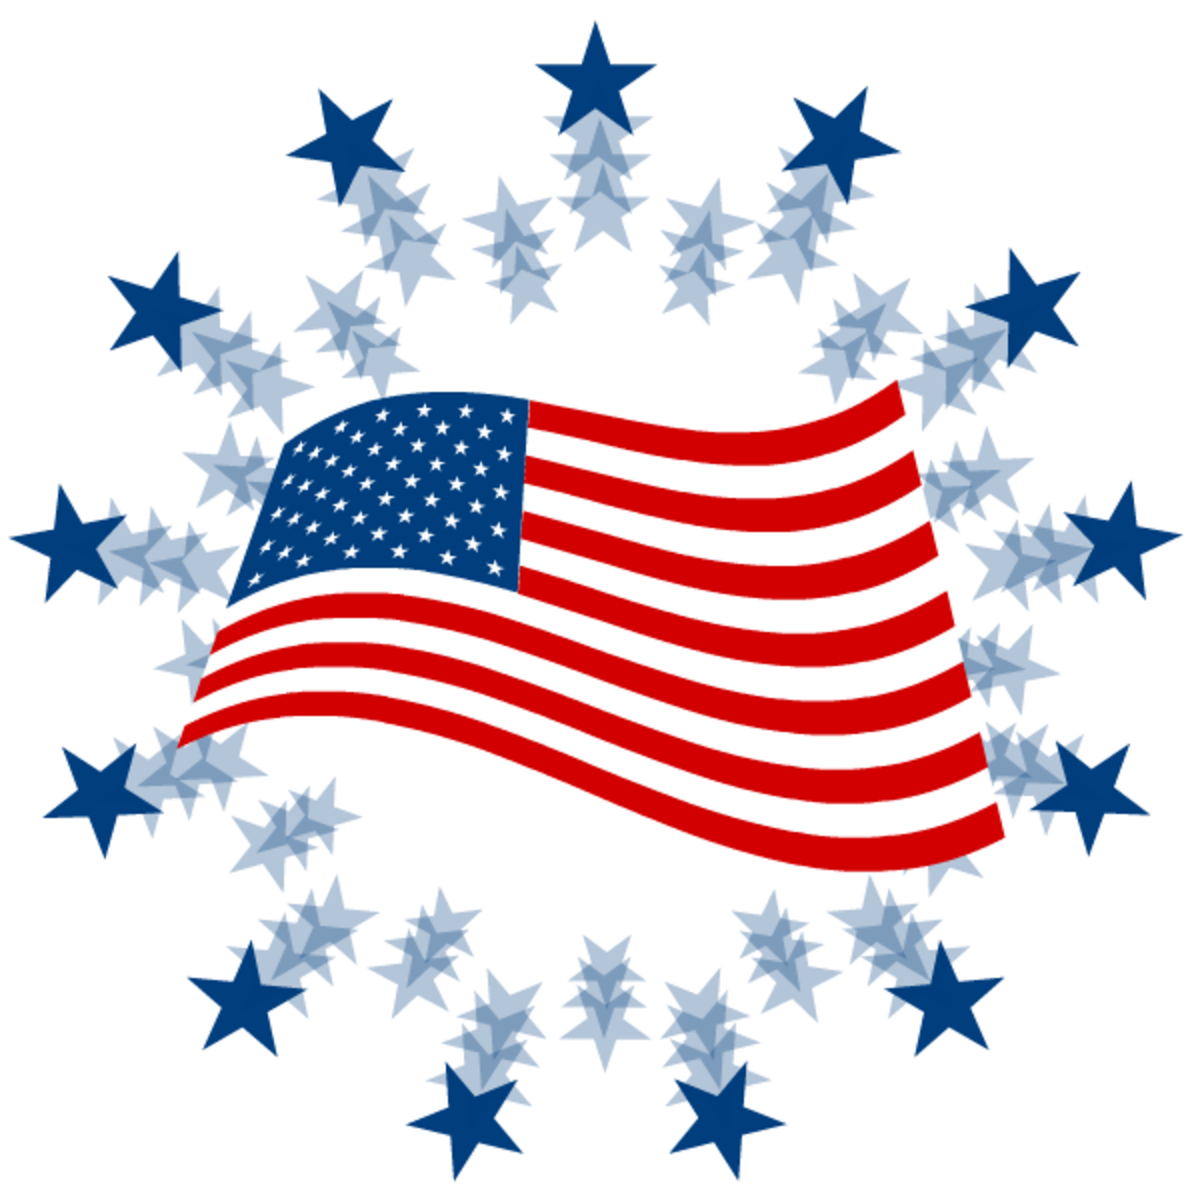 4th of July clip art: American flag and stars